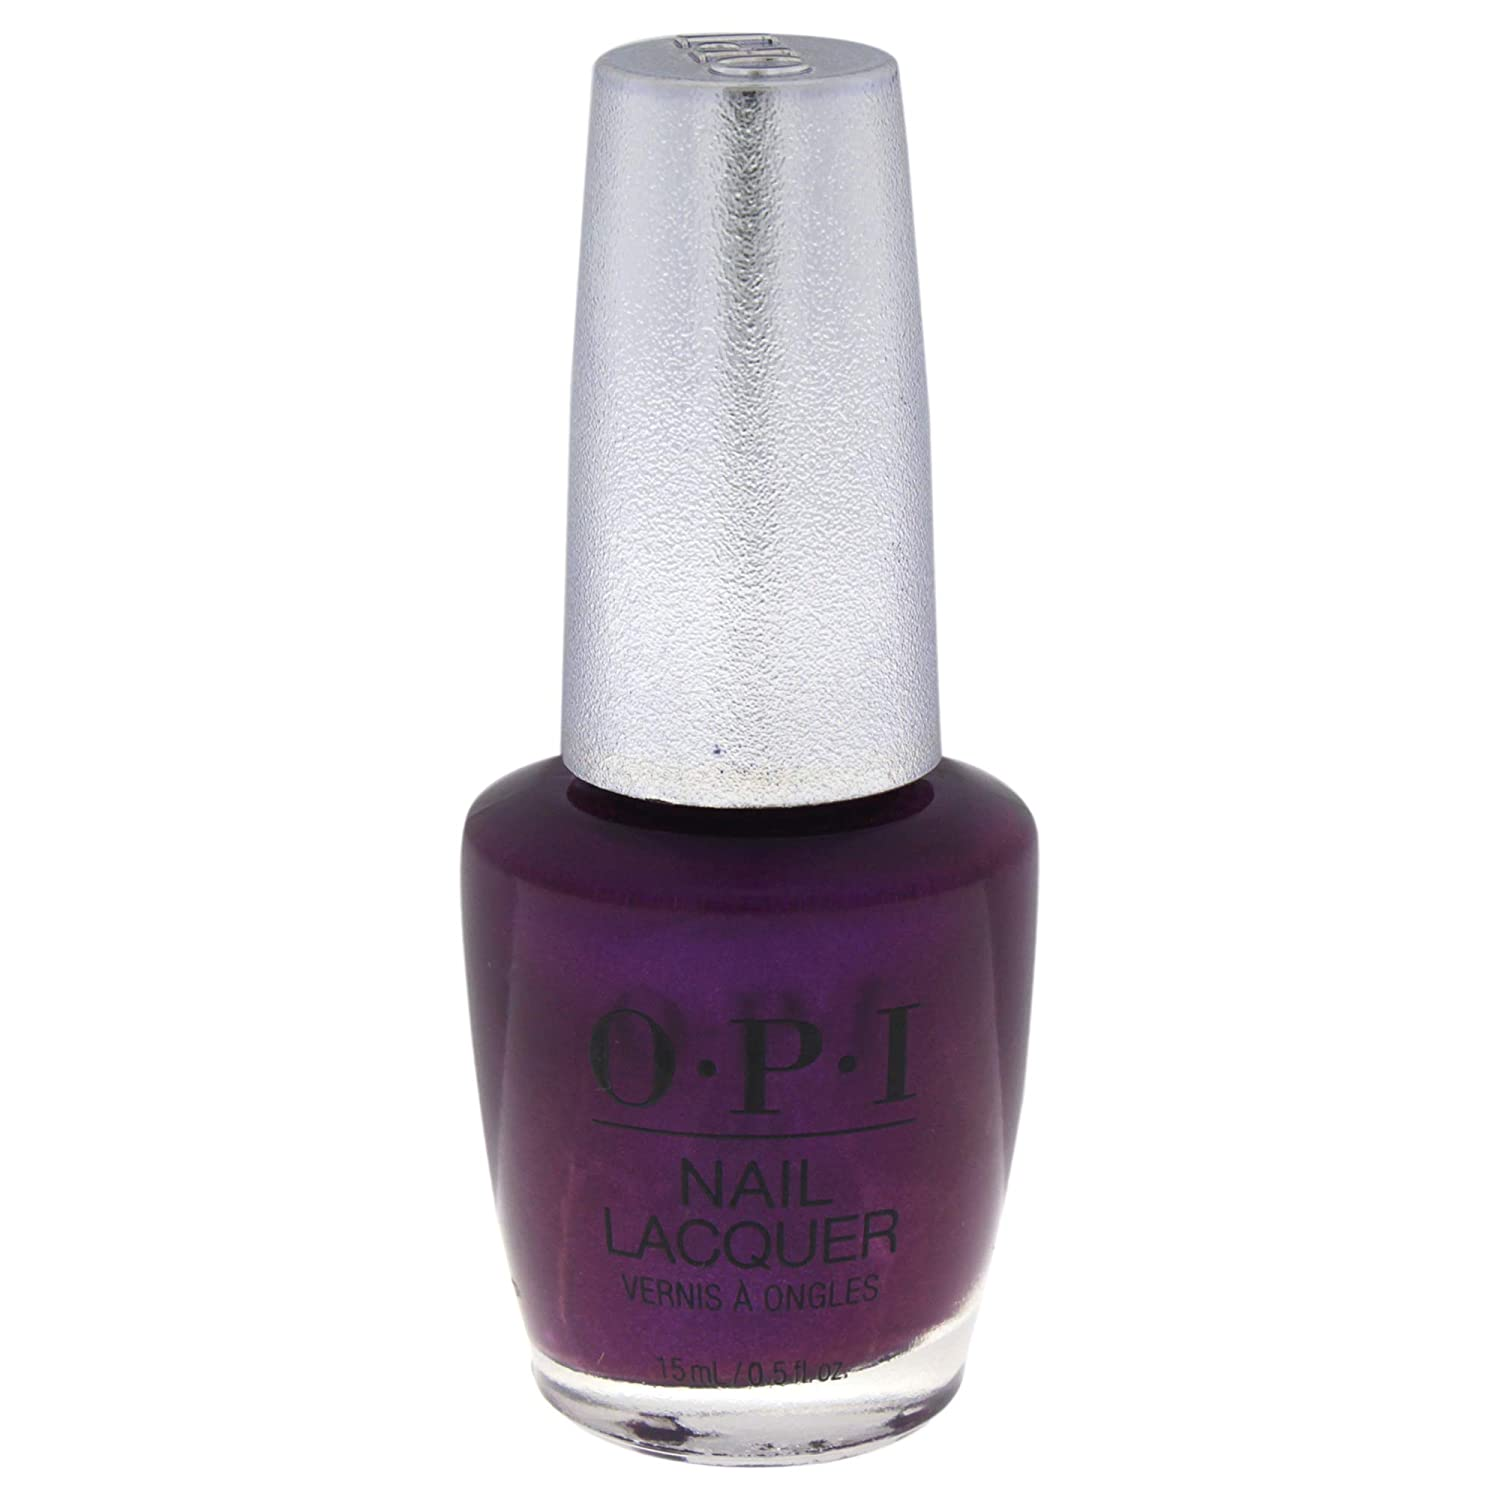 OPI Nail Lacquer, Purples